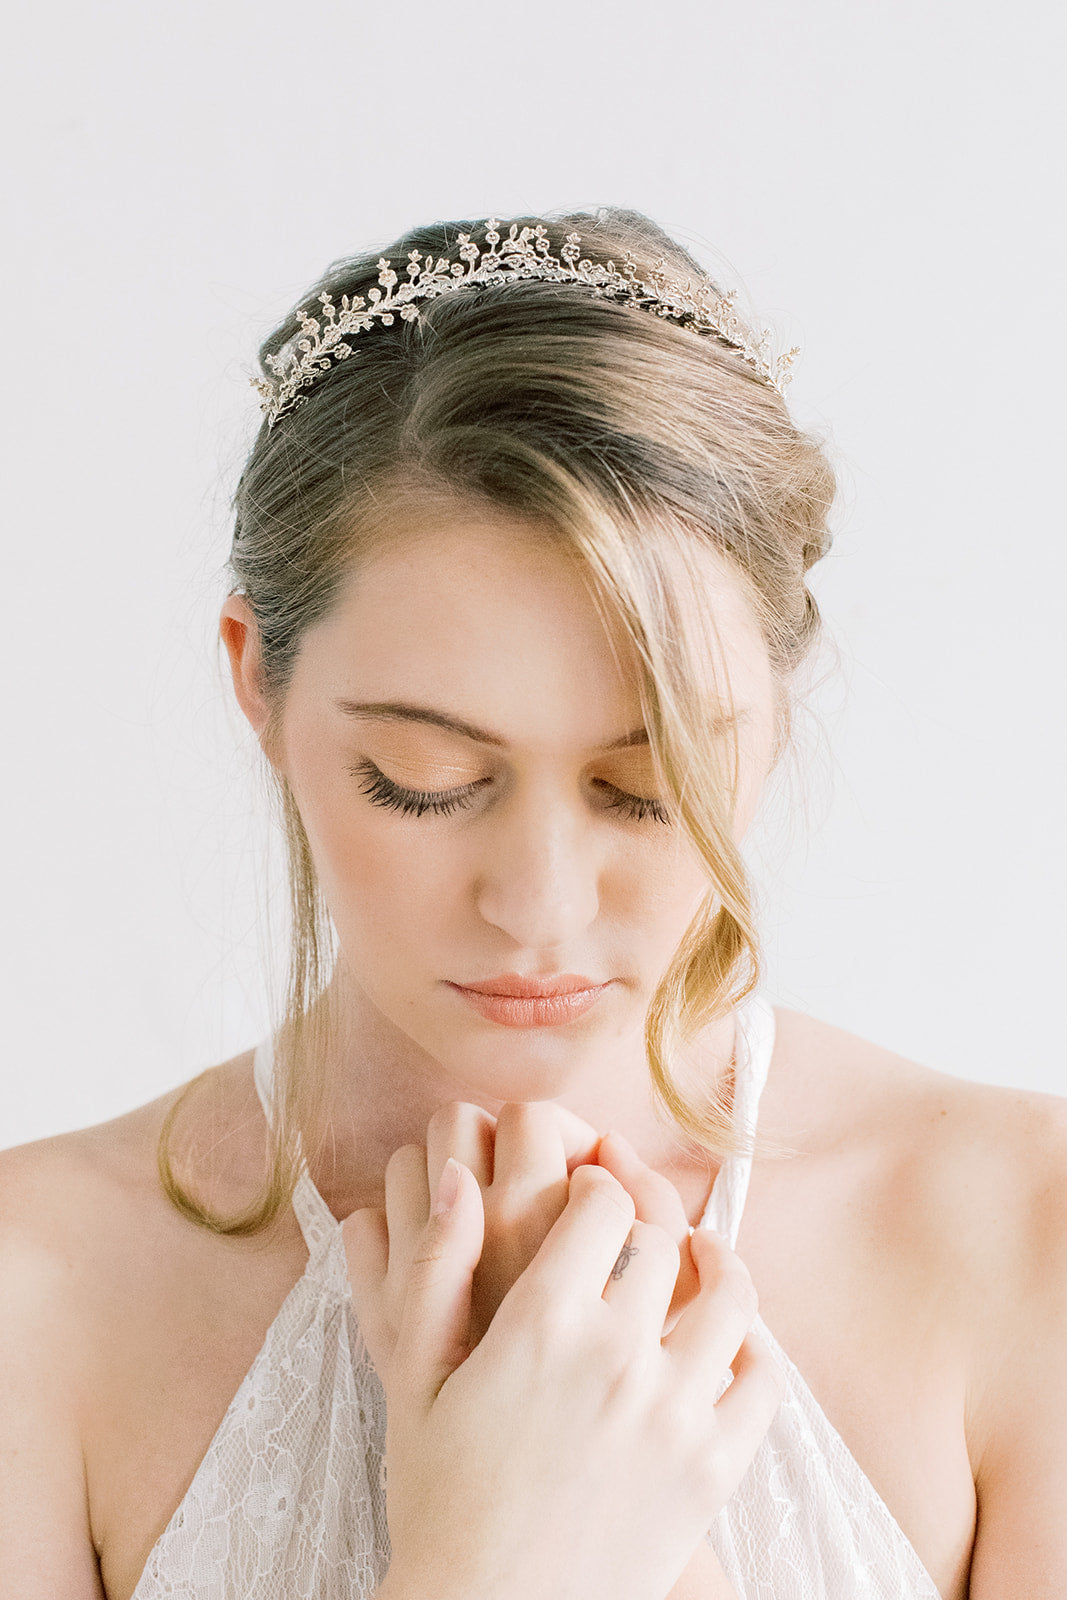 Delicate Blossoms Tiara Style Crown - Headband, Flower Crown, Bridal, Head Piece, Hair Accessories